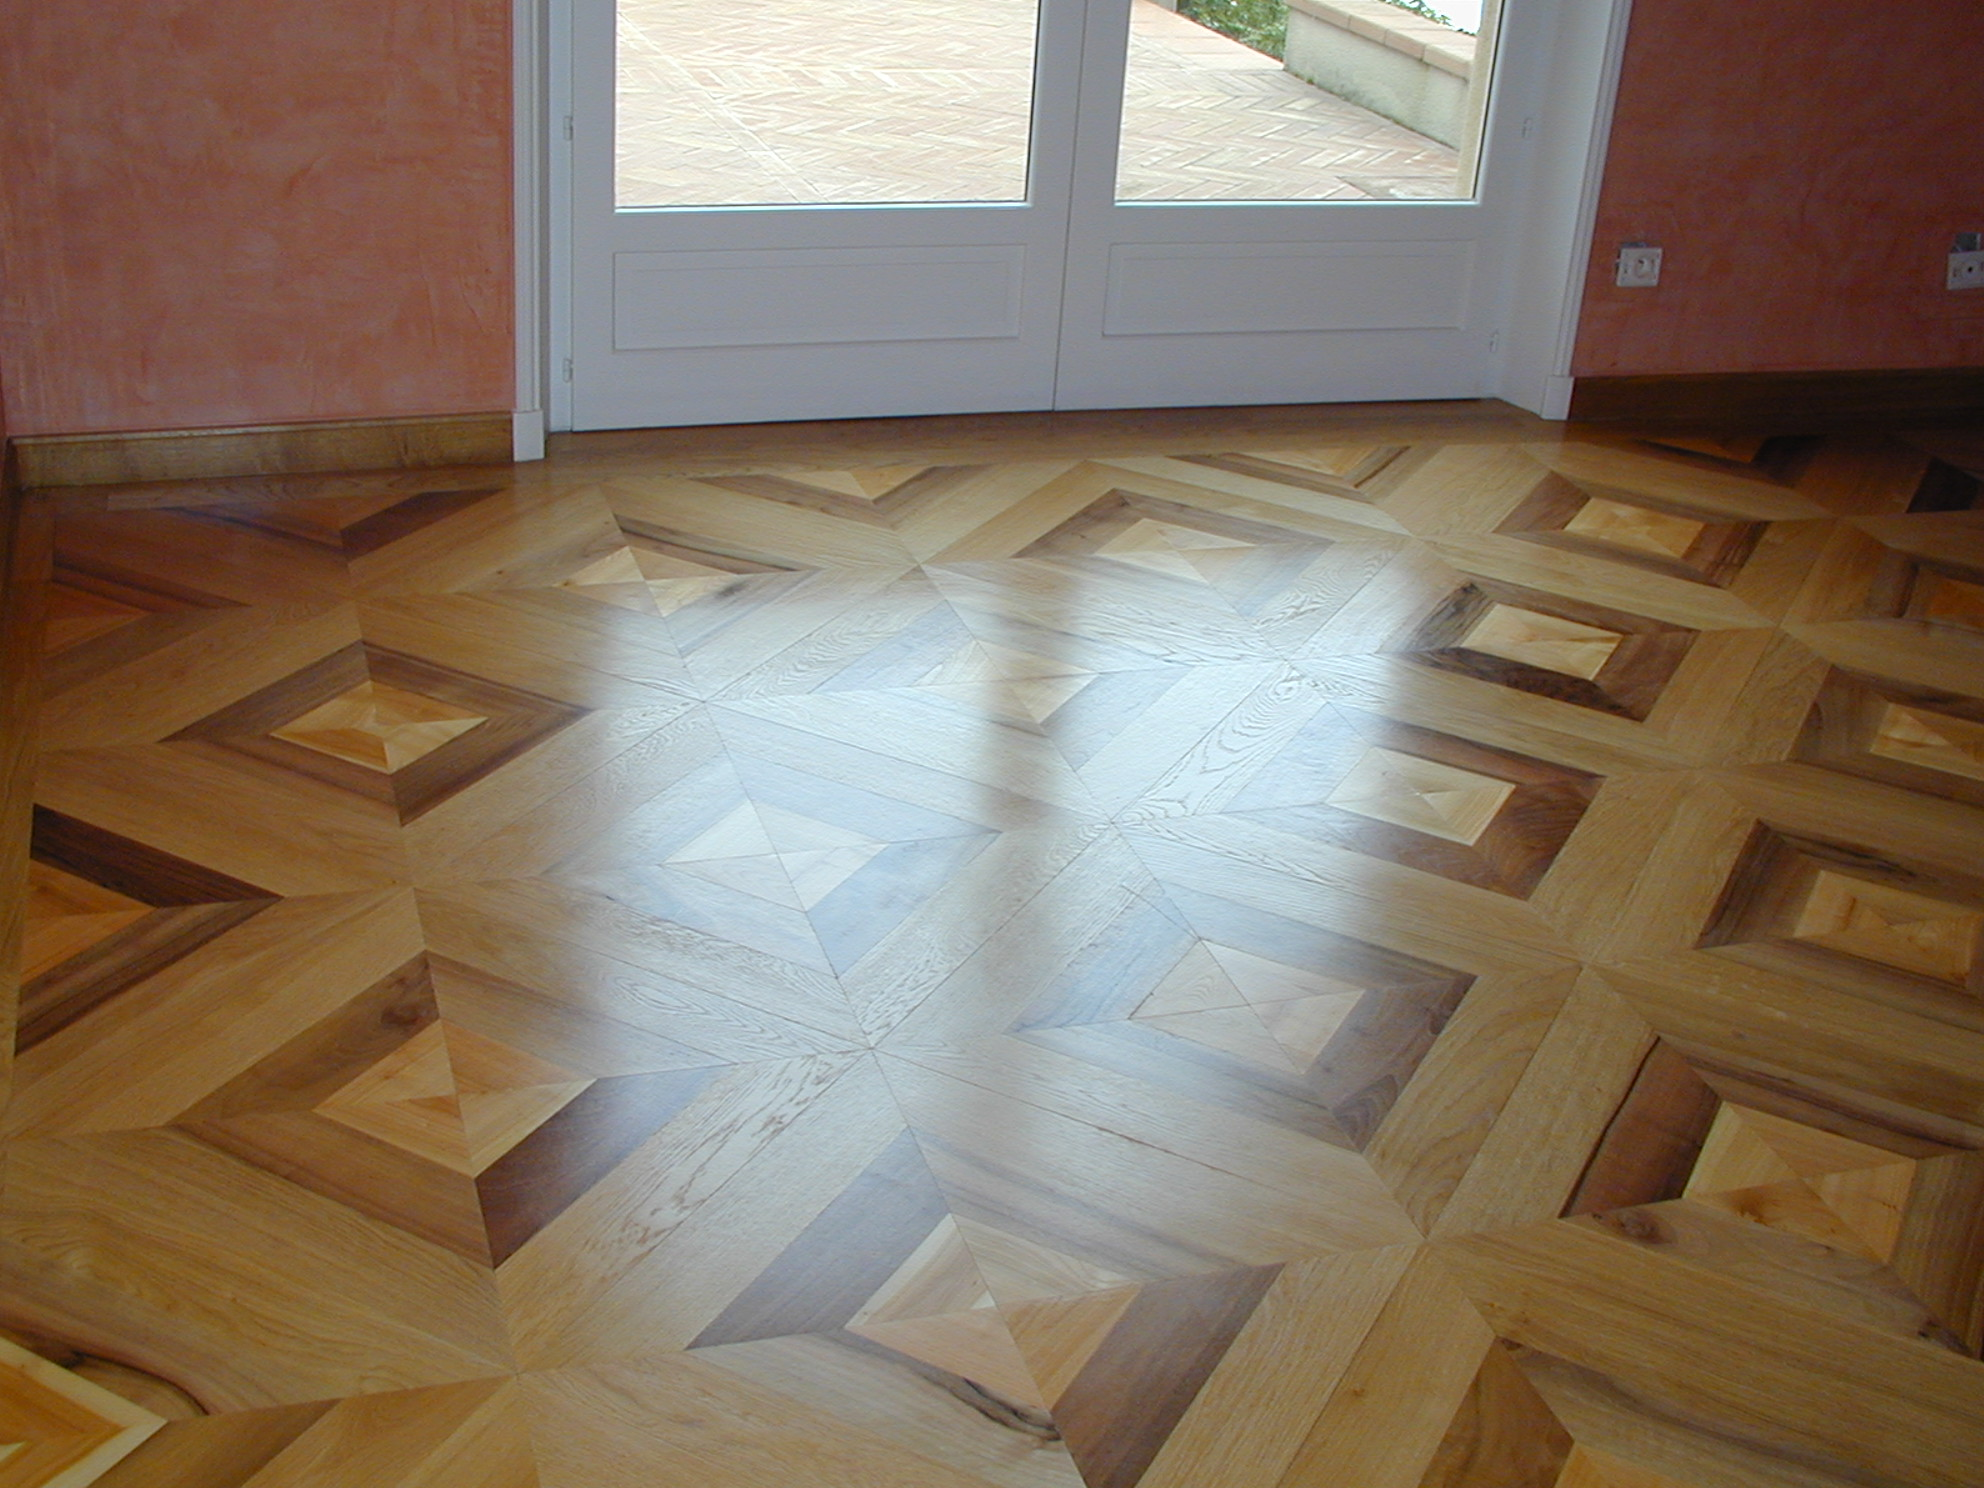 parquet ancien finest parquet ancien with parquet ancien best gros plan duun parquet ancien en. Black Bedroom Furniture Sets. Home Design Ideas